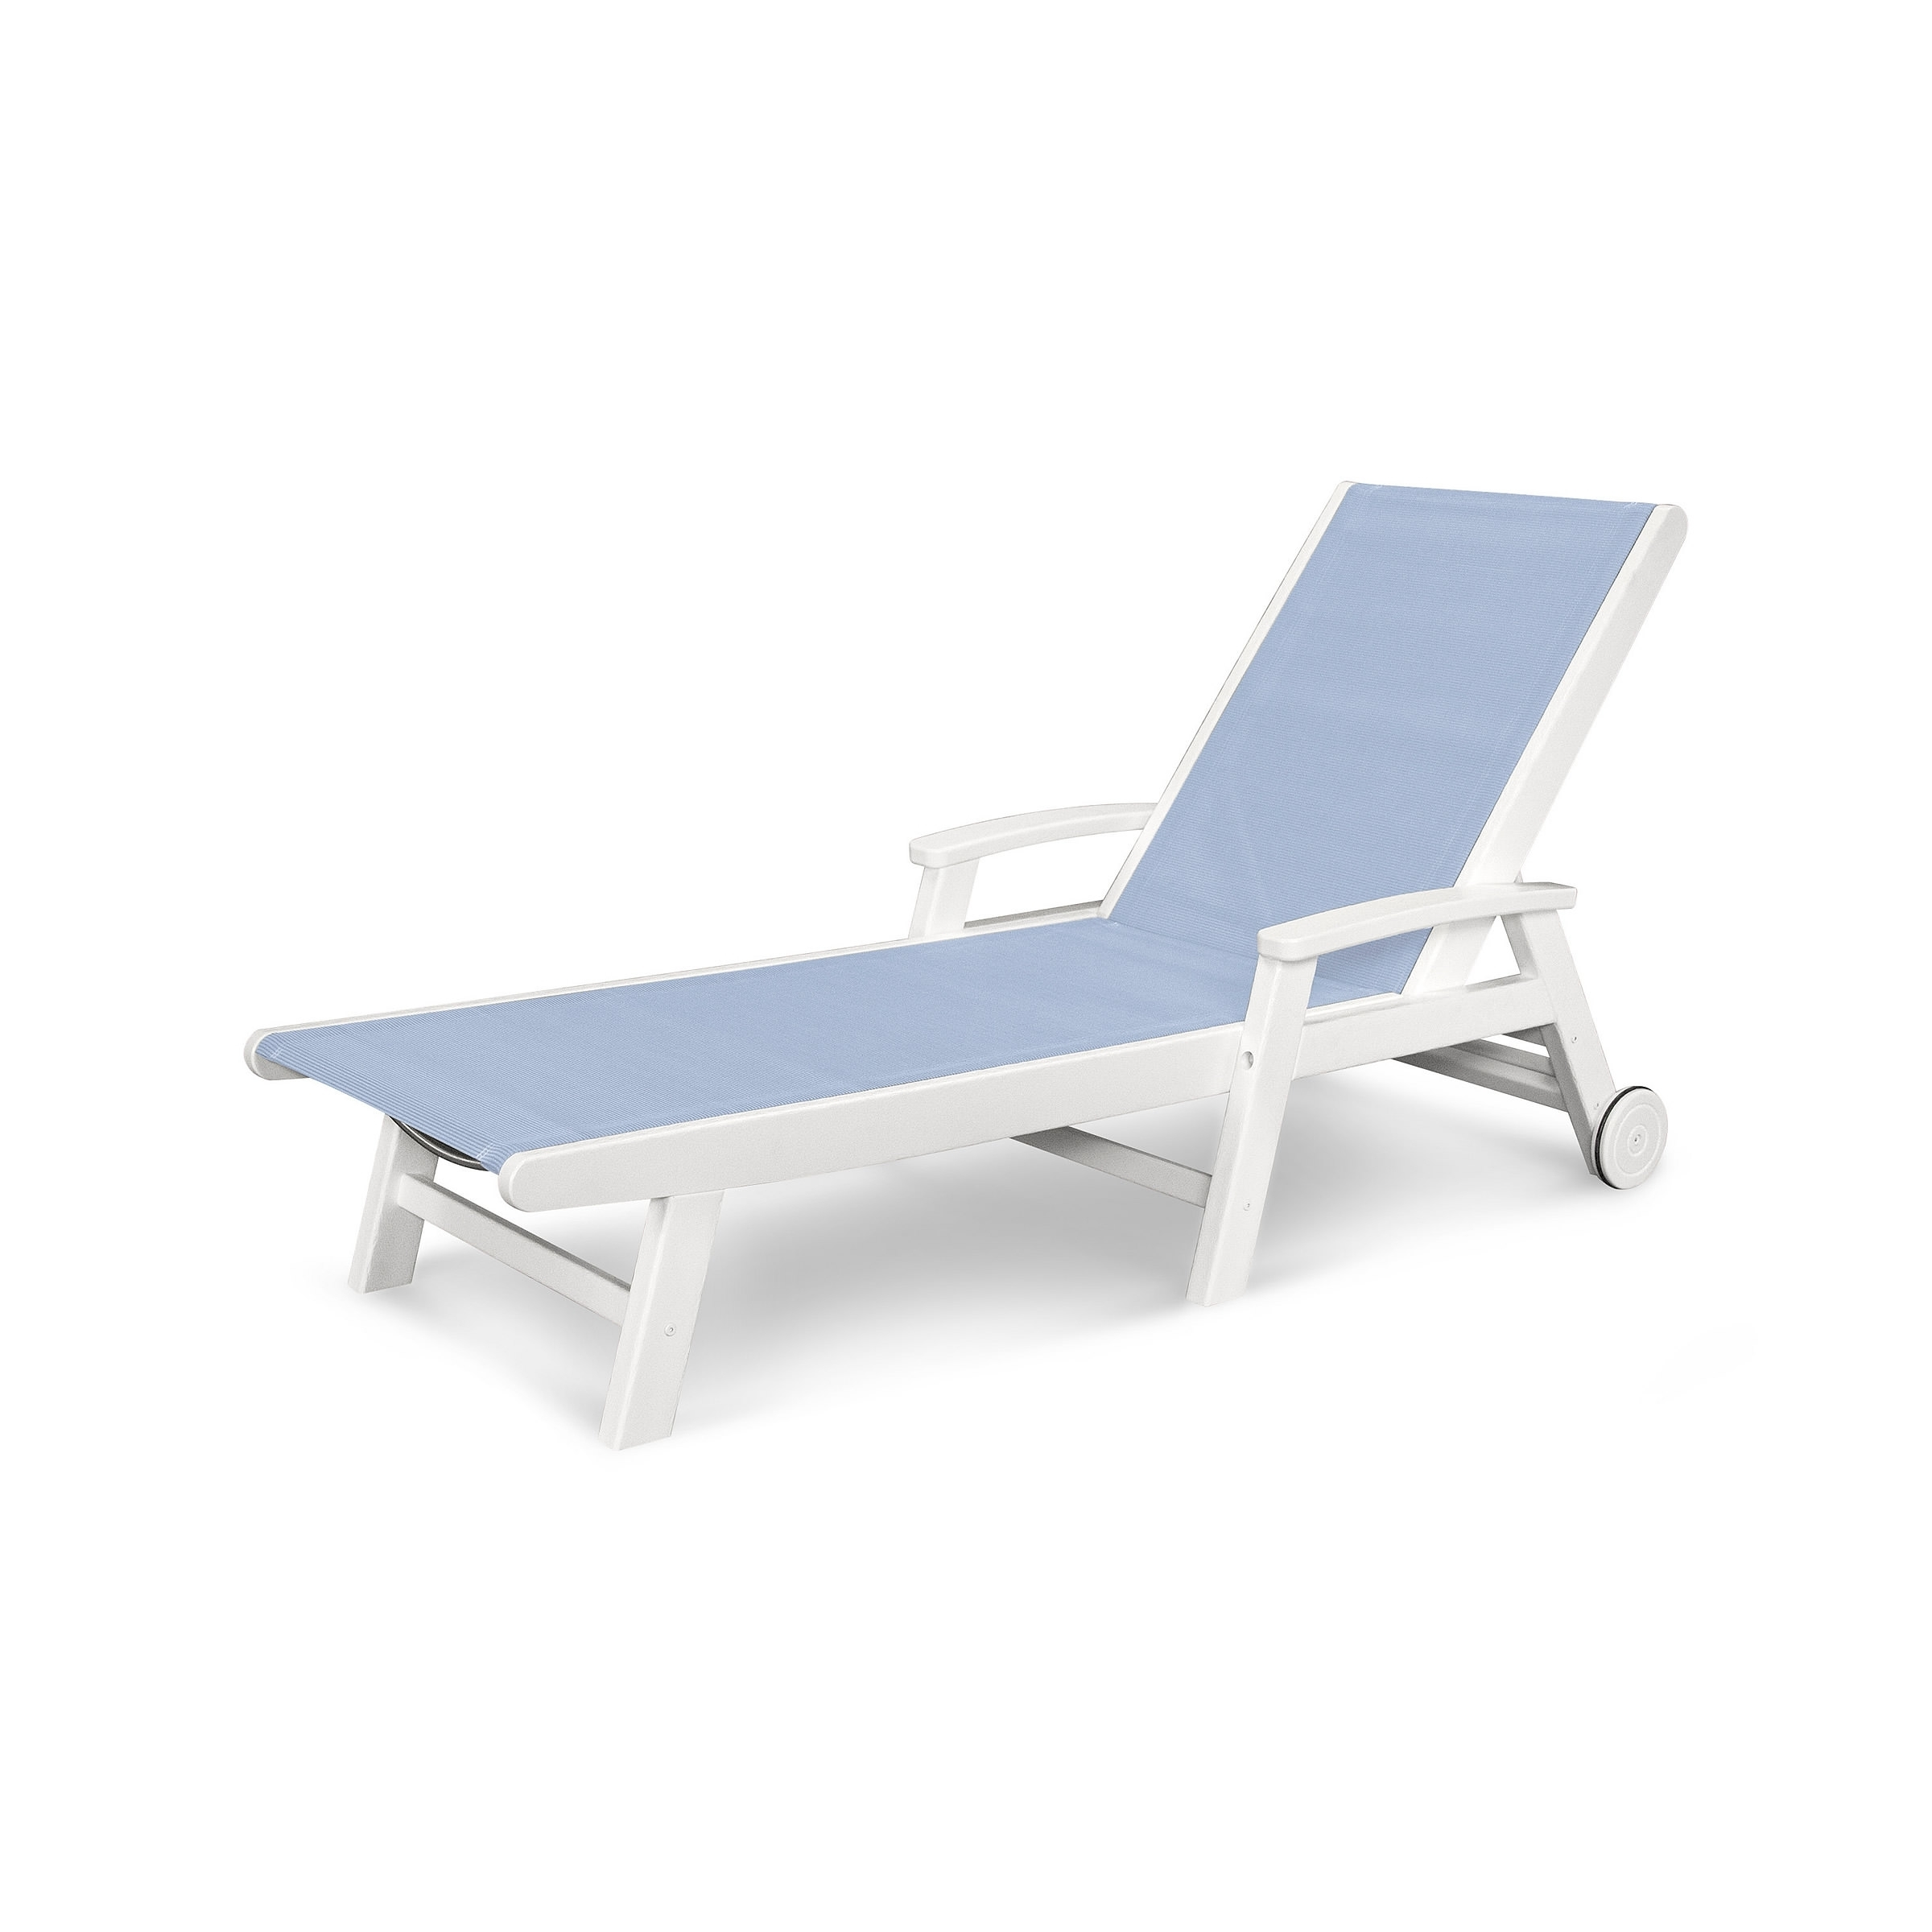 Outdoor Chaise Lounges For Polywood Chaise Lounges (View 6 of 15)